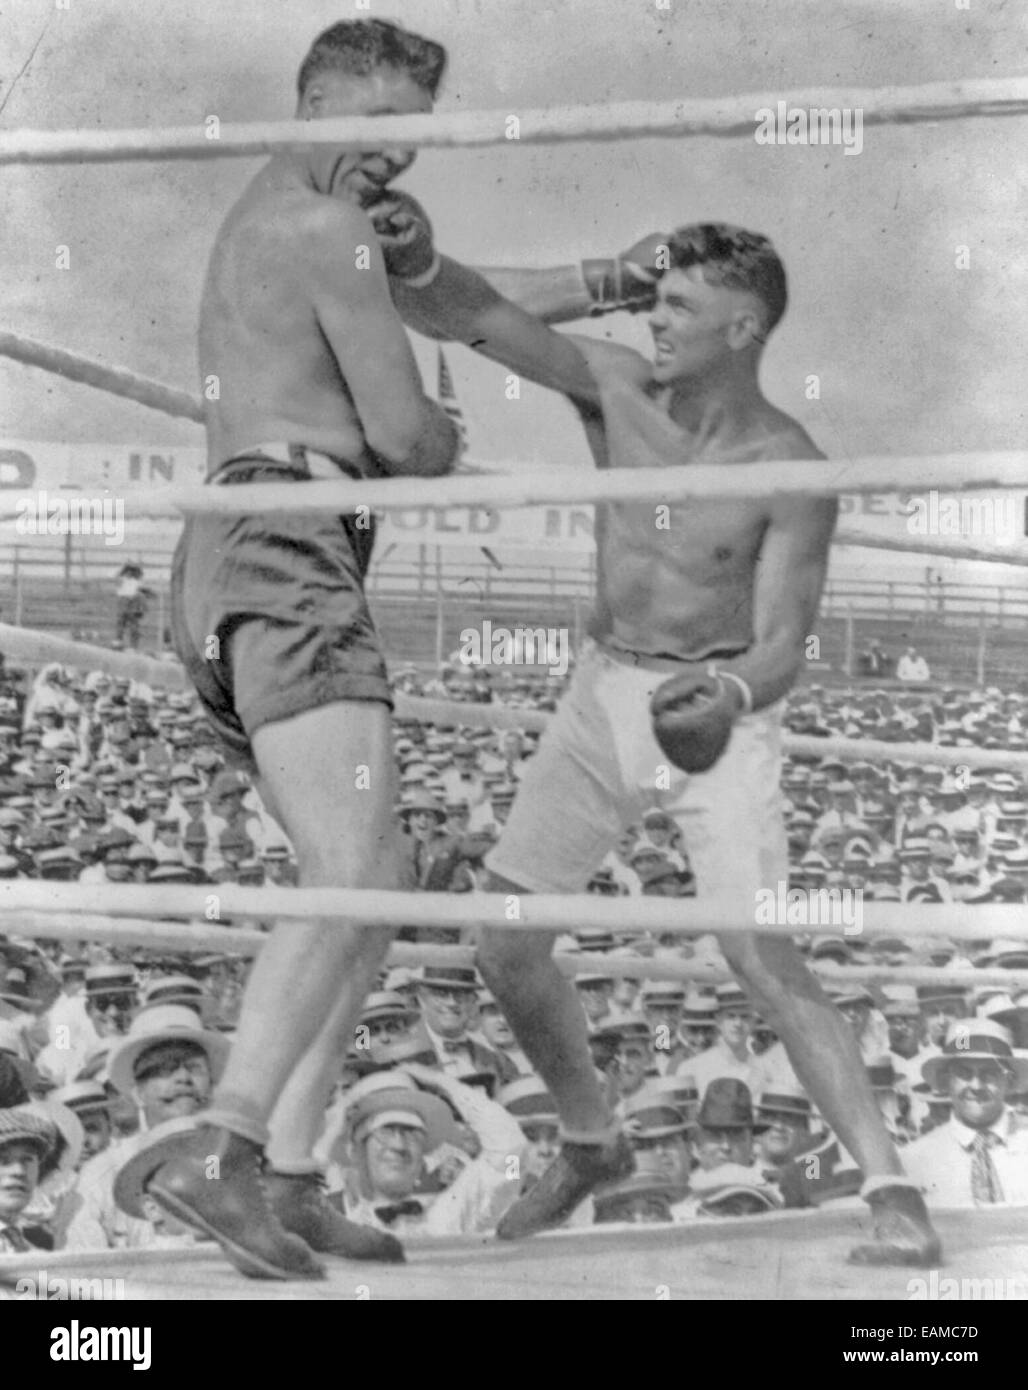 The knockout blow in the Dempsey-Willard battle.  Jack Dempsey landing a right punch to the jaw of Jess Willard, - Stock Image